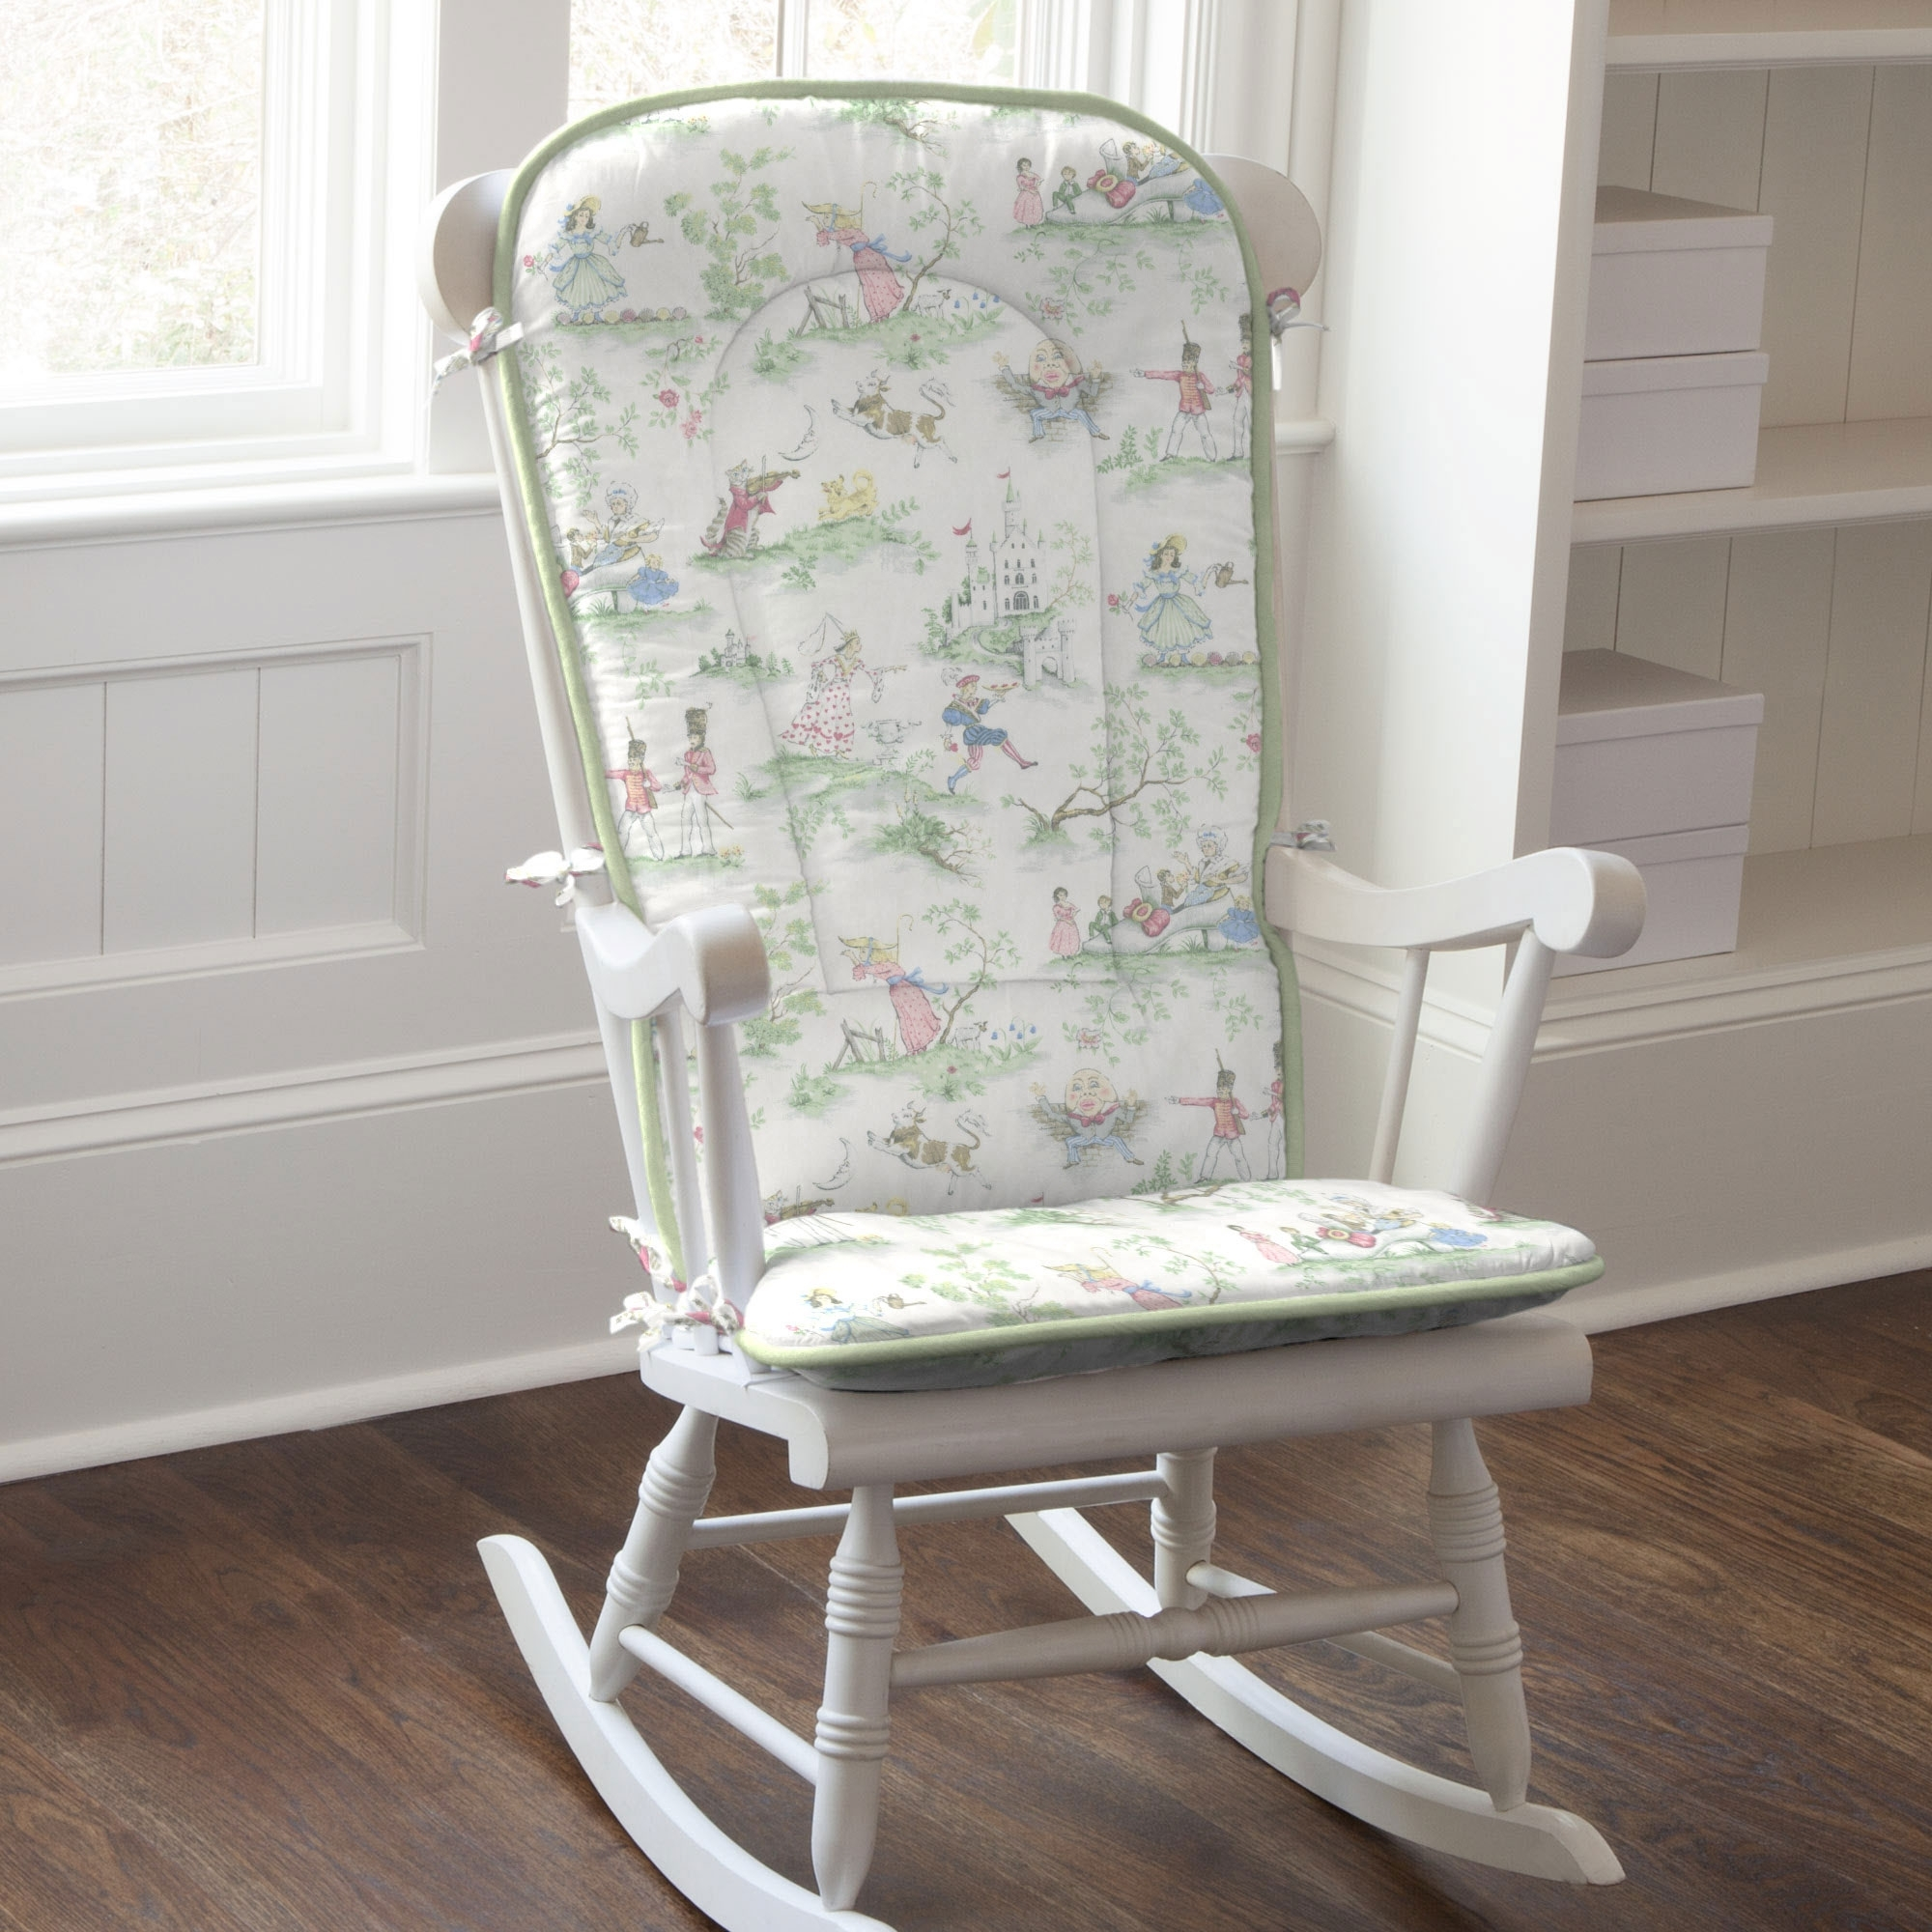 Newest Rocking Chair For Nursery Adult : Milton Milano Designs – Rocking Throughout Rocking Chairs For Nursery (View 14 of 20)